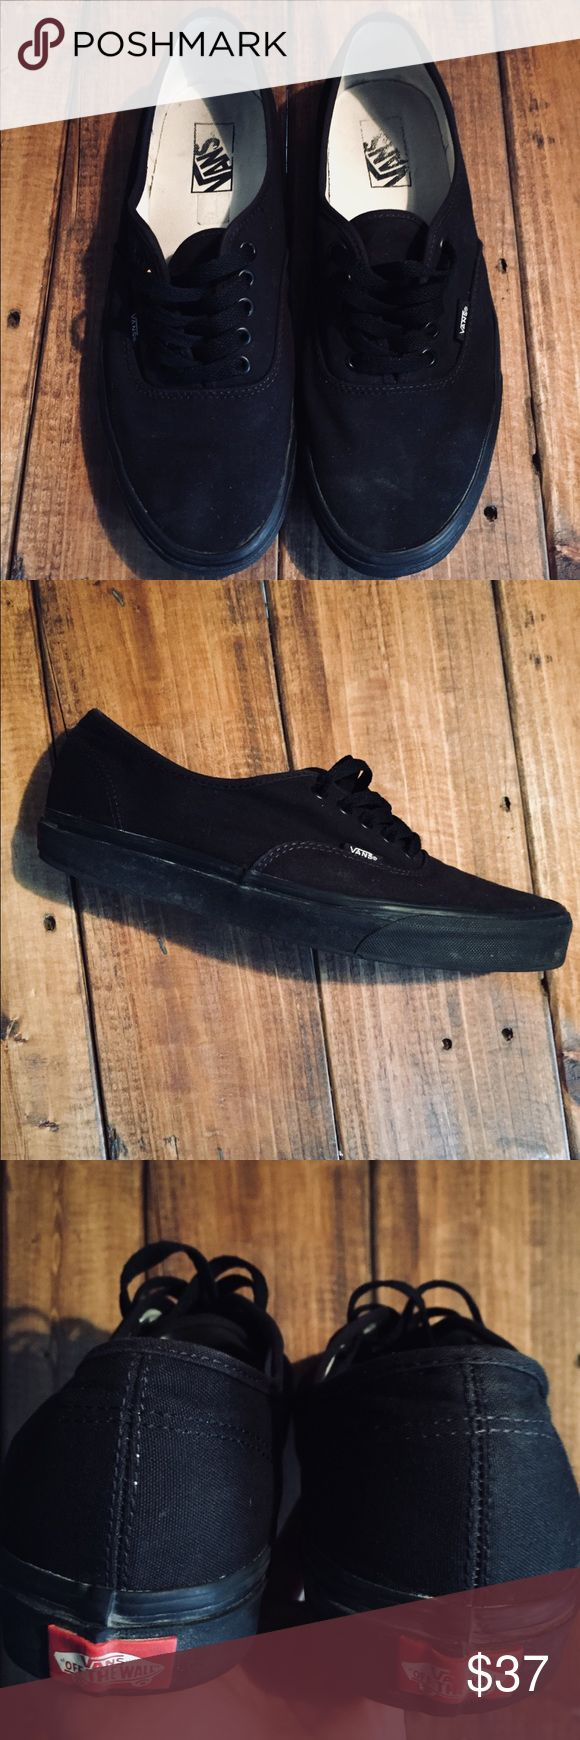 All Black Vans Skate Shoes Authentic All Black low Vans. Lightly worn over a year and really taken care of. The wear and tear is equivalent to someone wearing them 2 or 3 times. Originally 50 dollars Vans Shoes Sneakers